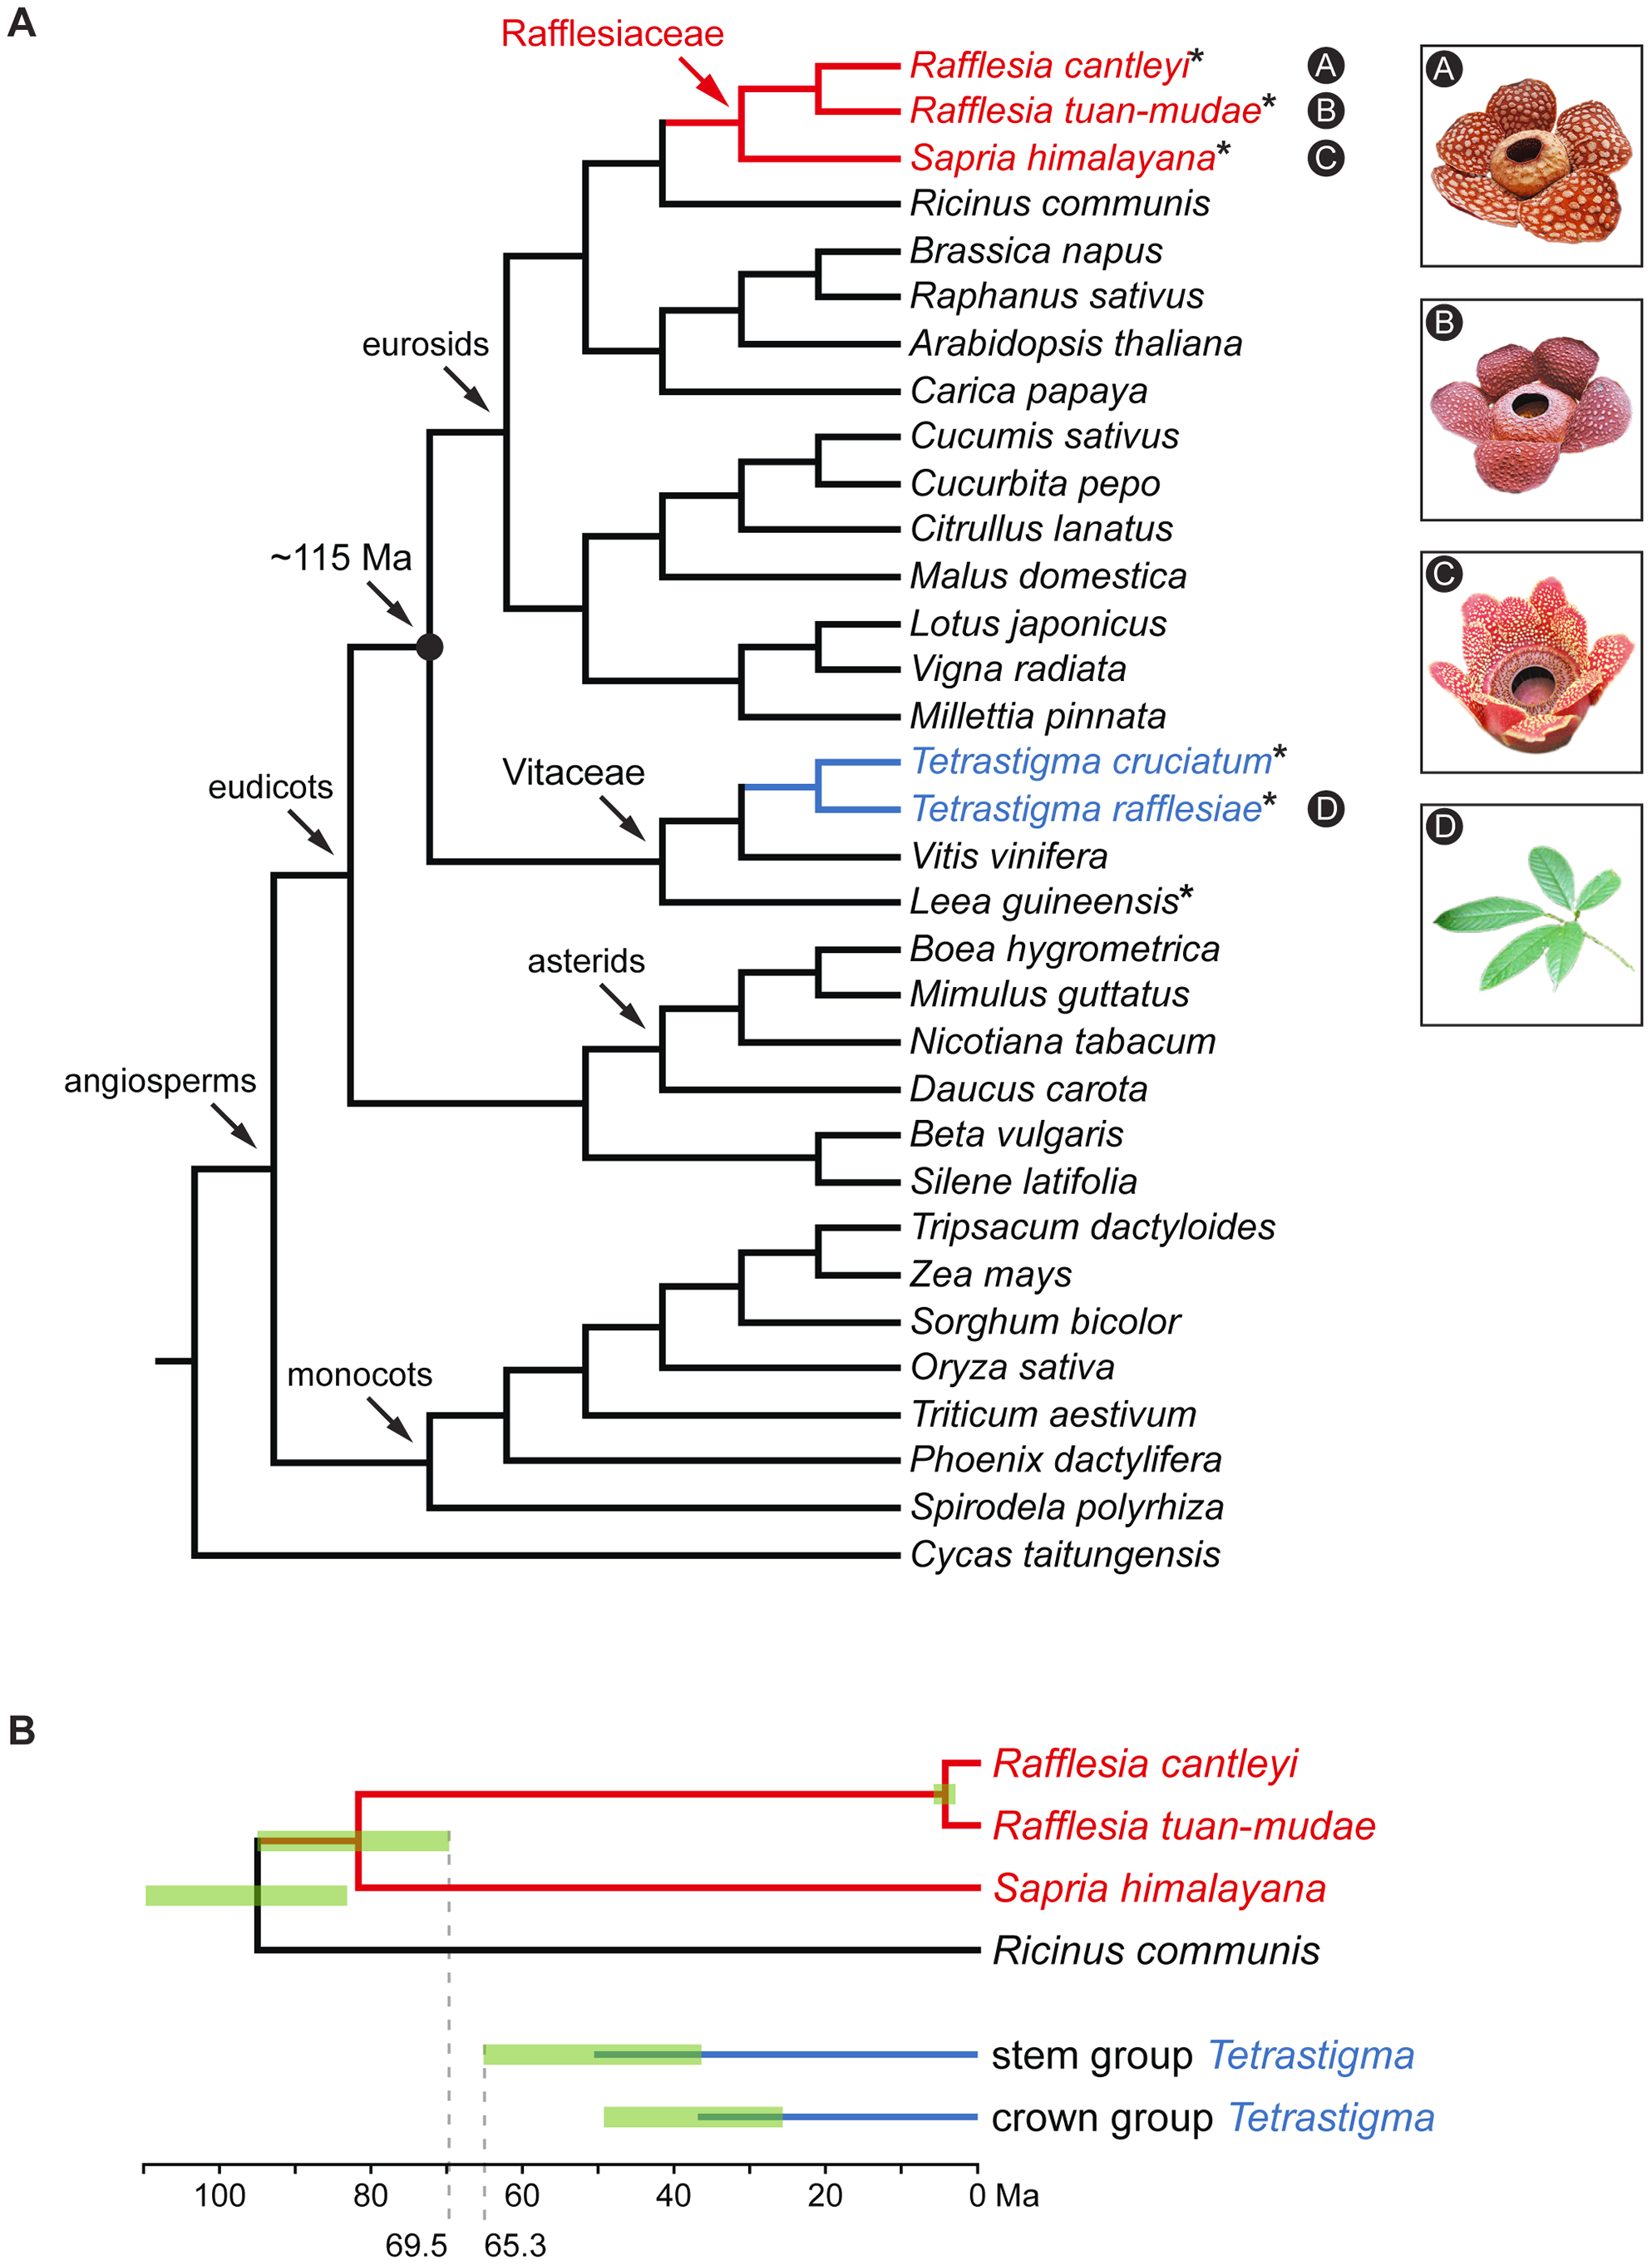 Phylogenetic relationships and divergence times of the three Rafflesiaceae species and two <i>Tetrastigma</i> species included in this study.